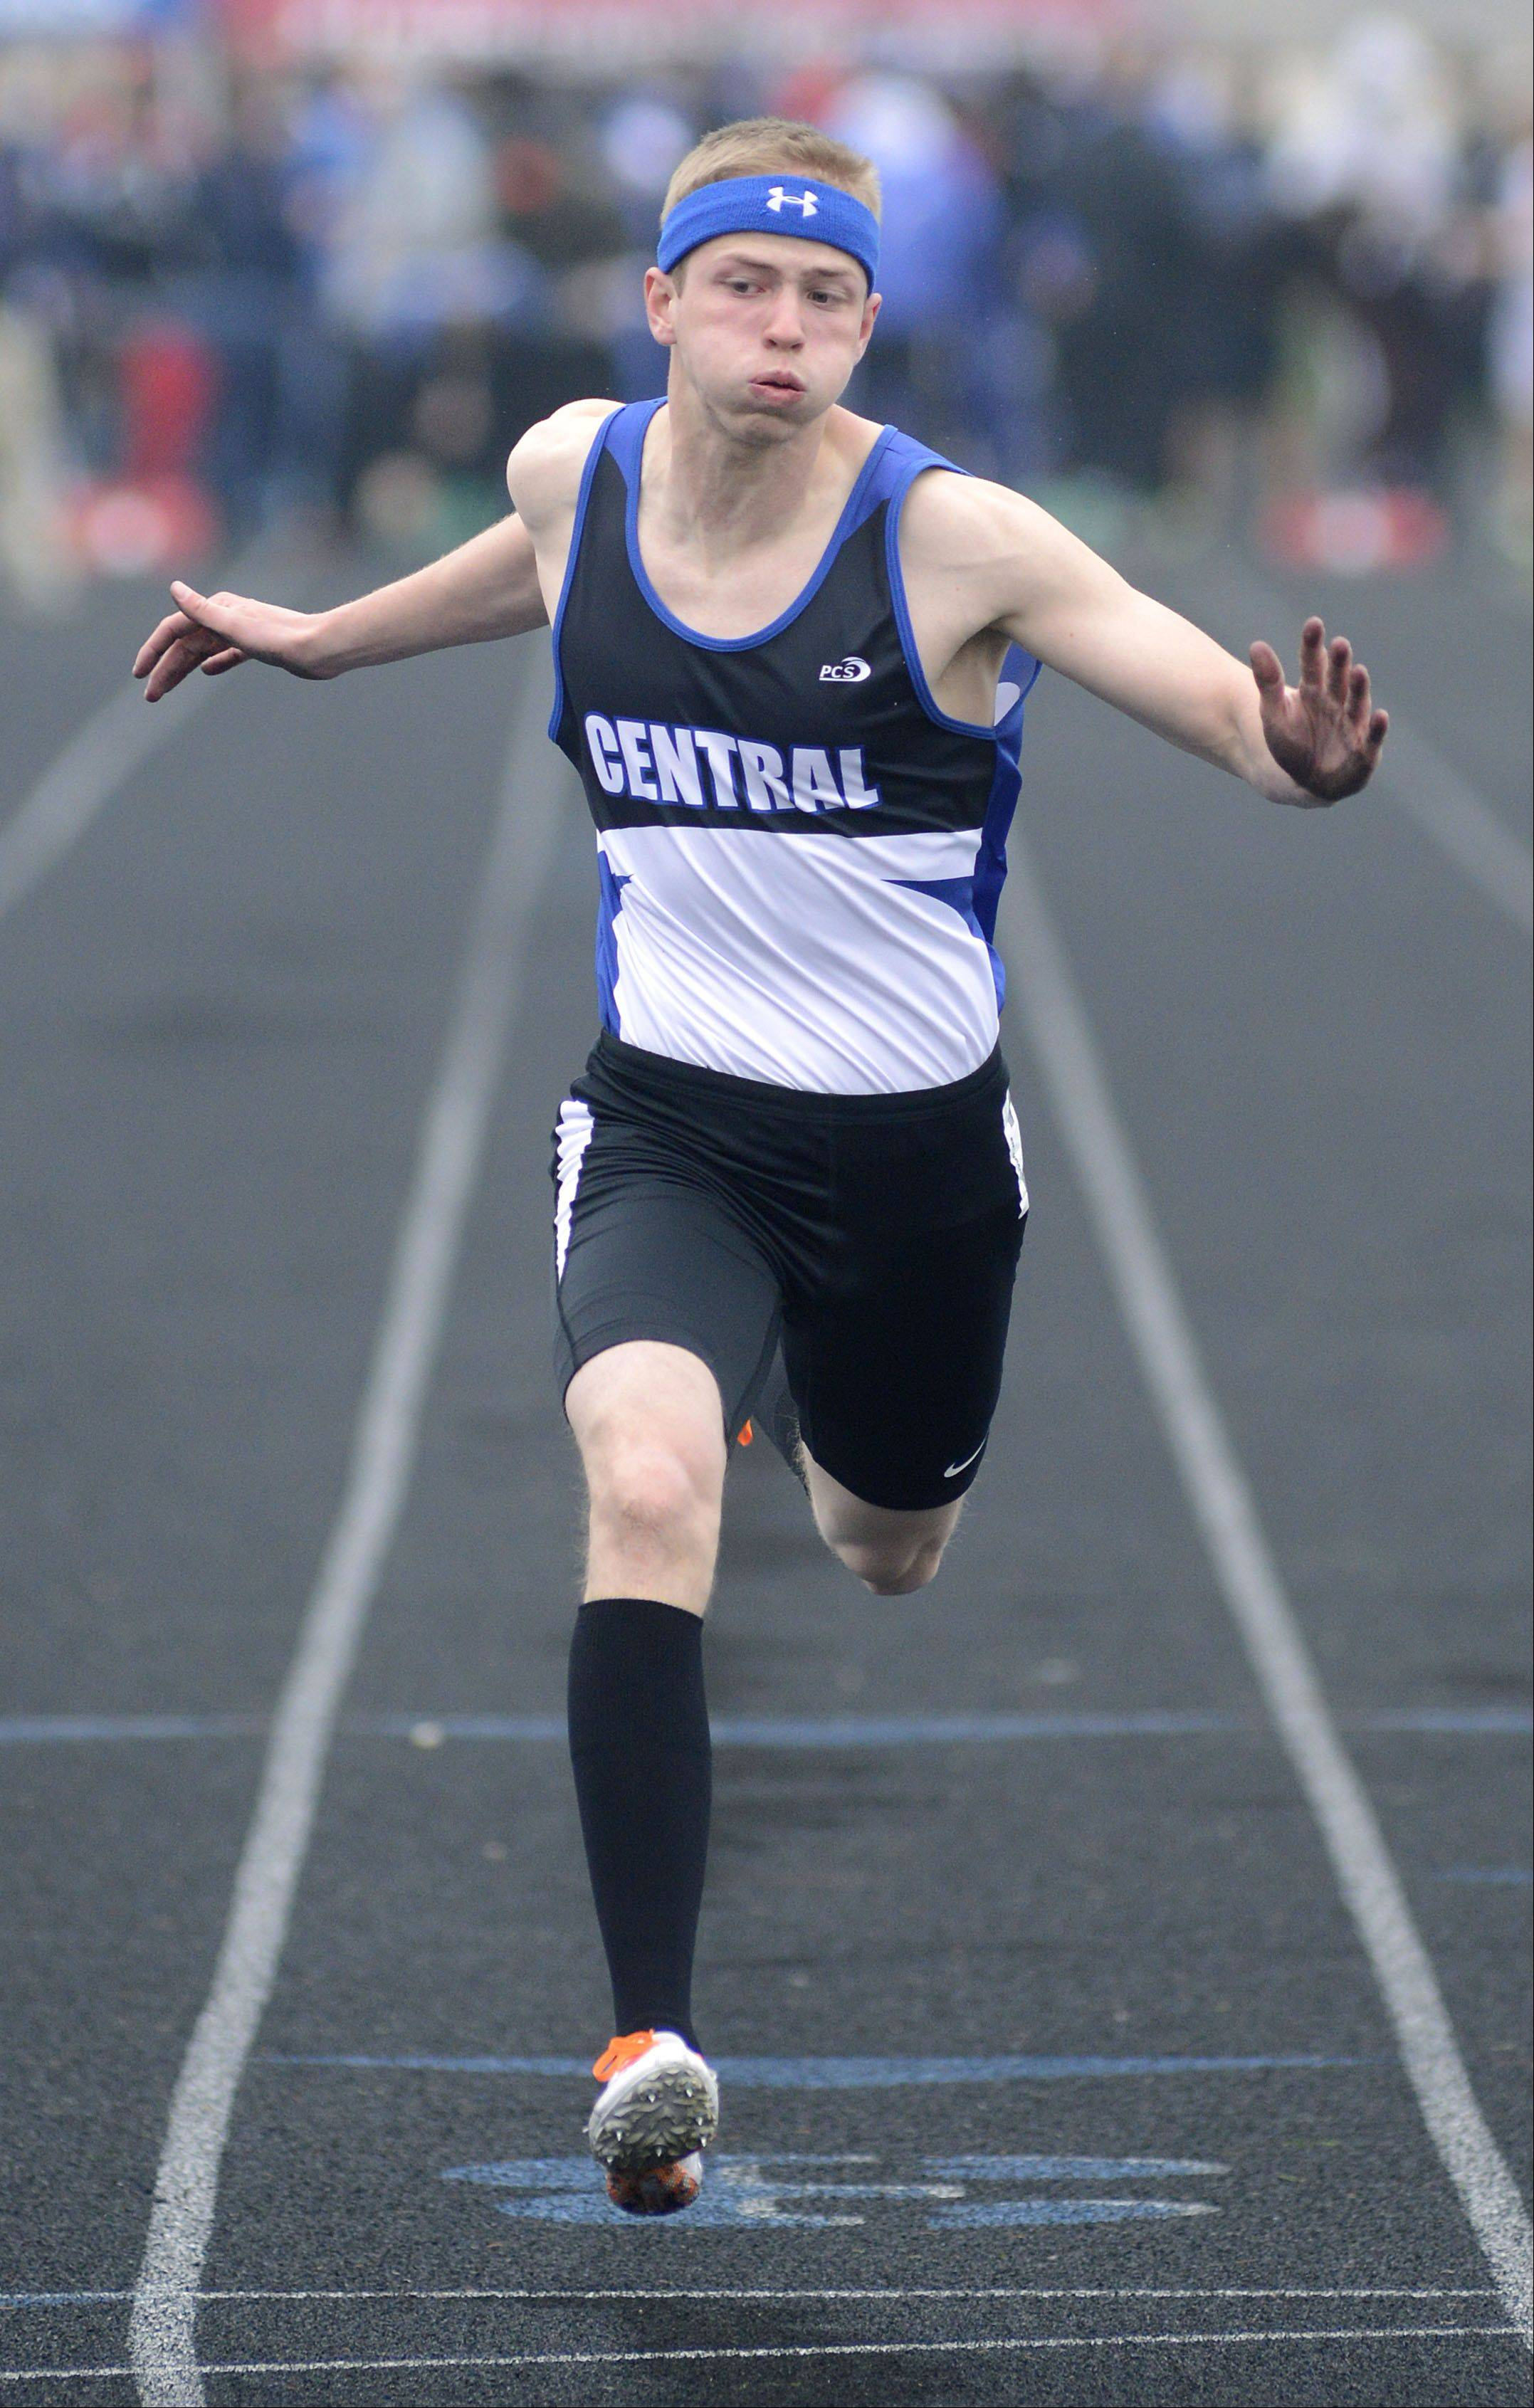 Burlington Central's Ryan Olsen competes in the 100-meter dash at the recent Kane County Meet. The Rockets compete in the Class 2A Sterling sectional Friday.